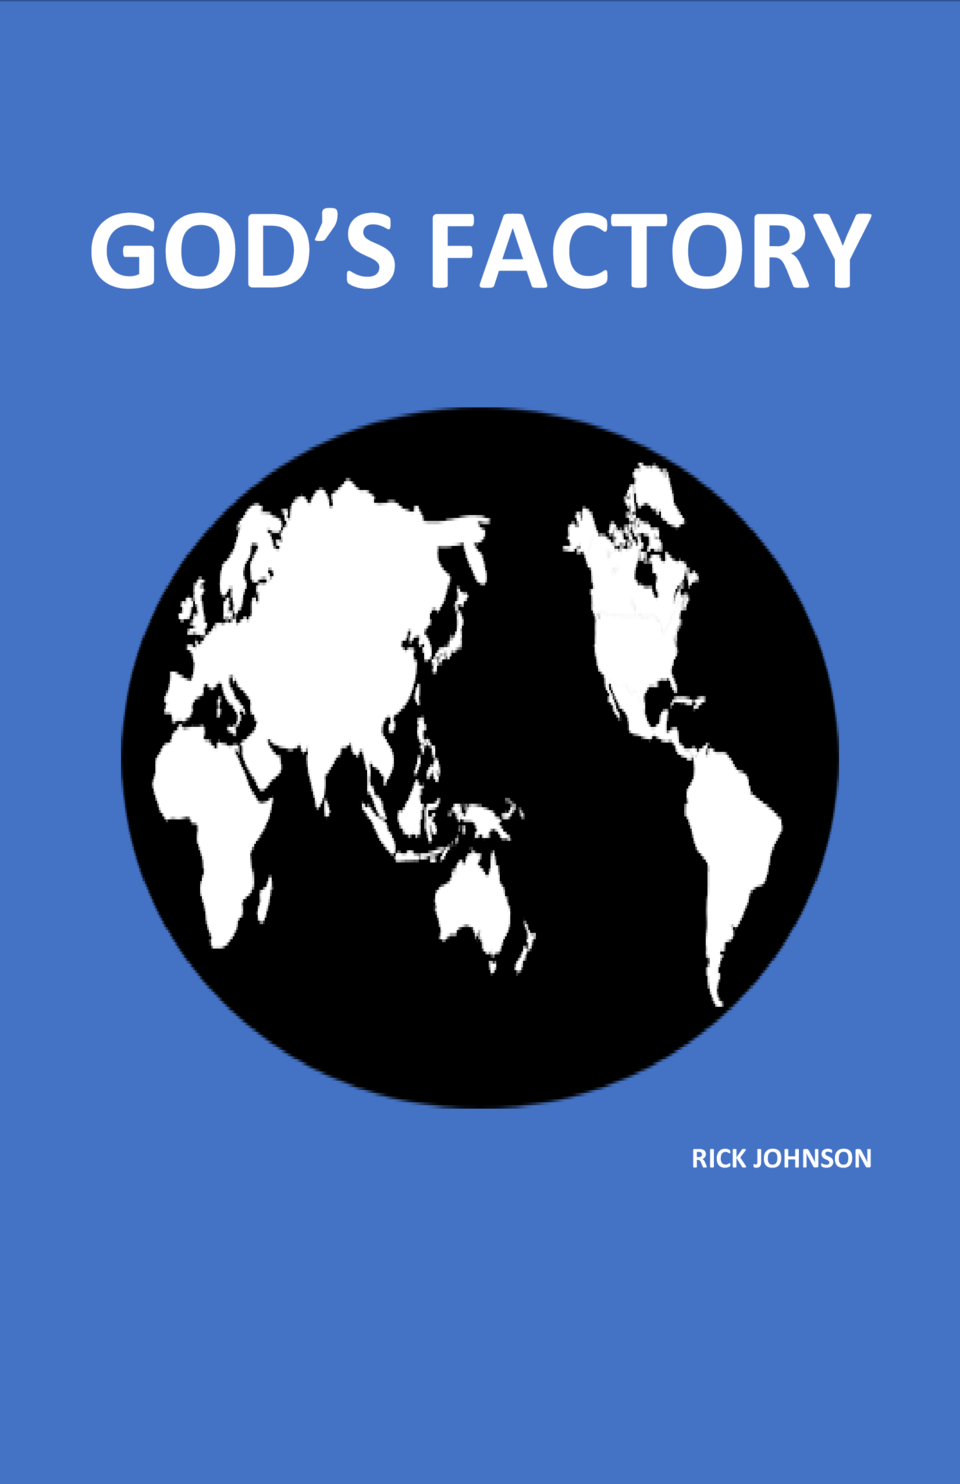 GOD   S FACTORY  RICK JOHNSON